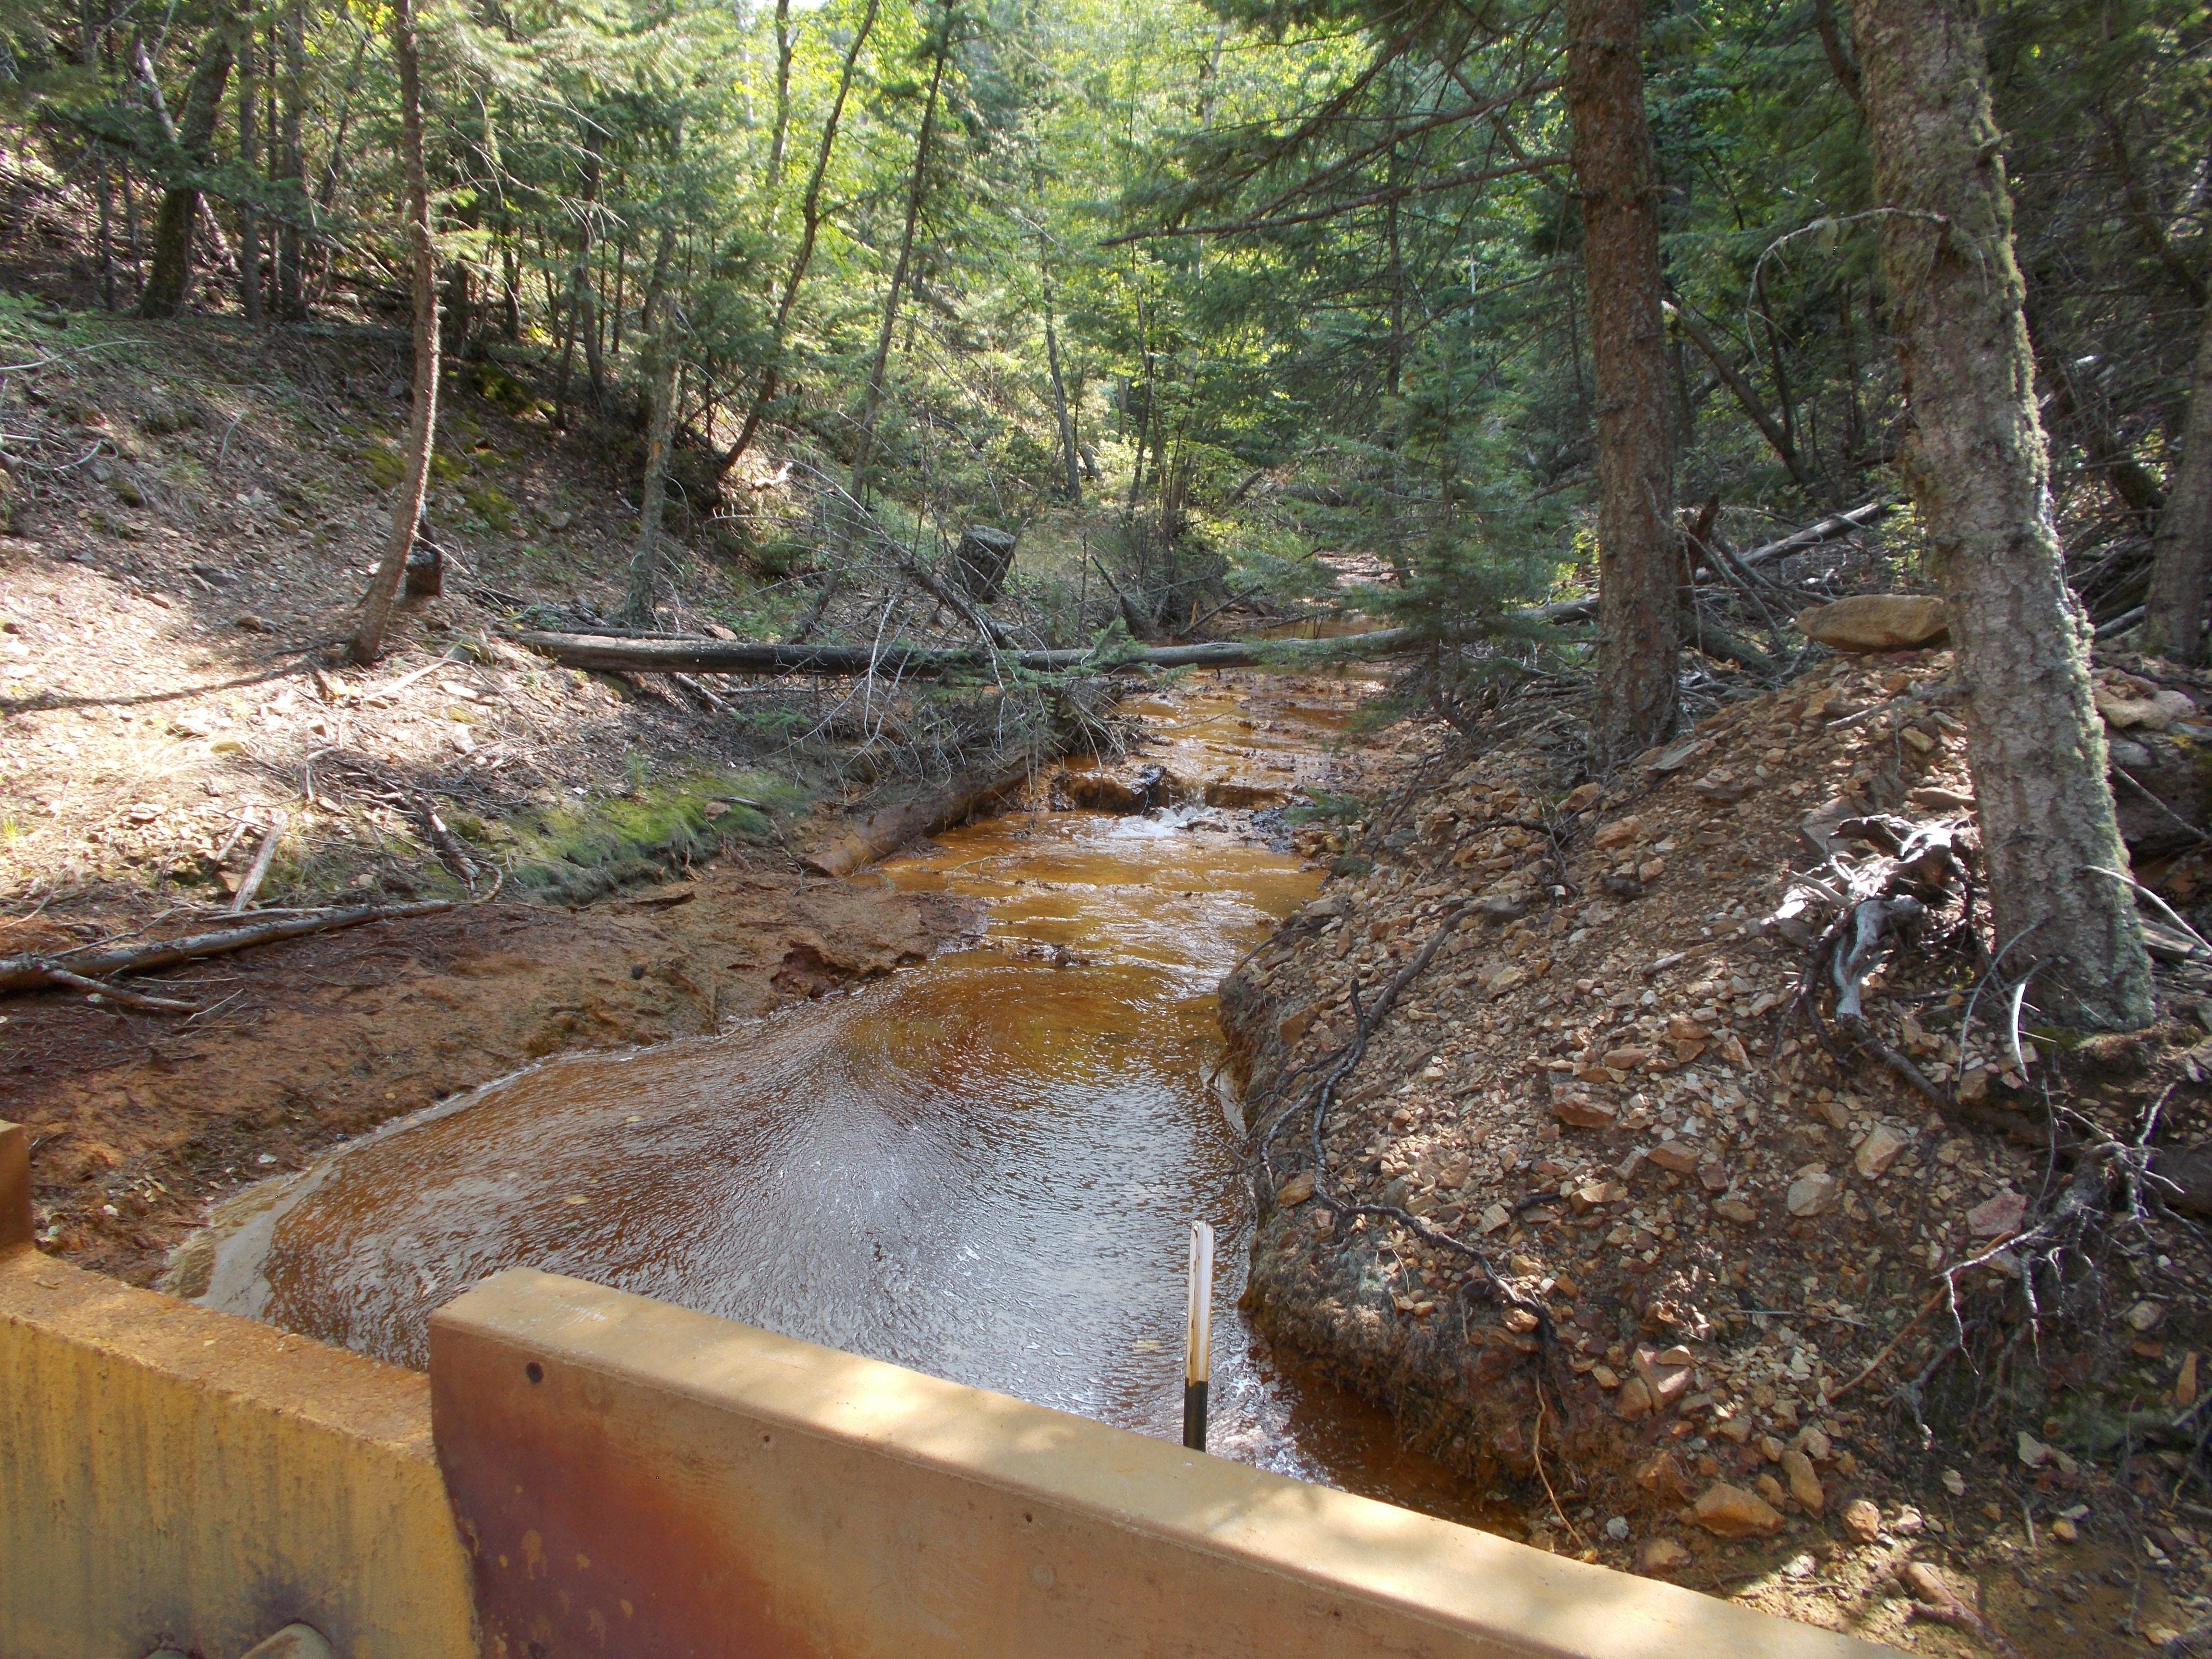 Water polluted from gold mines taints a creek in the Little Rocky Mountains.